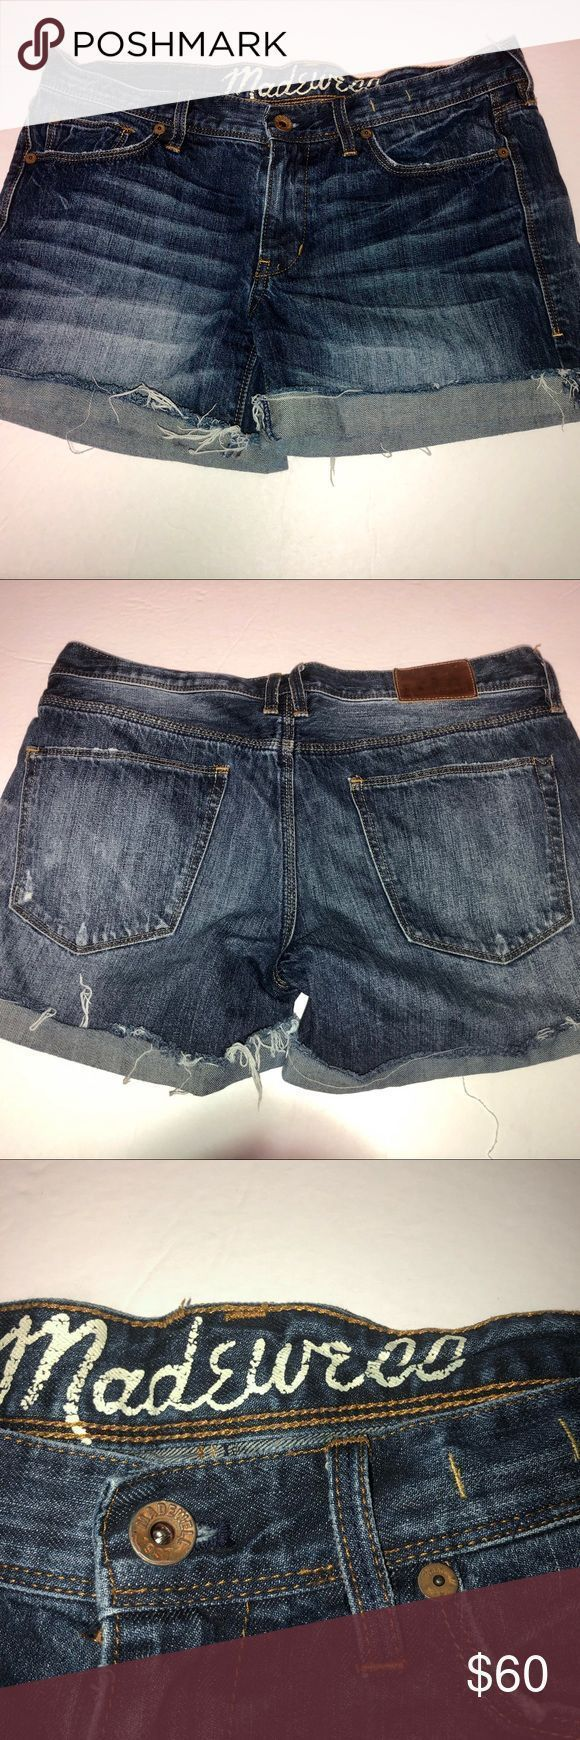 Madewell jean denim cutoff shorts size 28 Madewell jean denim cutoff shorts size#BeautyBlog #MakeupOfTheDay #MakeupByMe #MakeupLife #MakeupTutorial #InstaMakeup #MakeupLover #Cosmetics #BeautyBasics #MakeupJunkie #InstaBeauty #ILoveMakeup #WakeUpAndMakeup #MakeupGuru #BeautyProducts #denimcutoffshorts Madewell jean denim cutoff shorts size 28 Madewell jean denim cutoff shorts size#BeautyBlog #MakeupOfTheDay #MakeupByMe #MakeupLife #MakeupTutorial #InstaMakeup #MakeupLover #Cosmetics #BeautyBasic #denimcutoffshorts